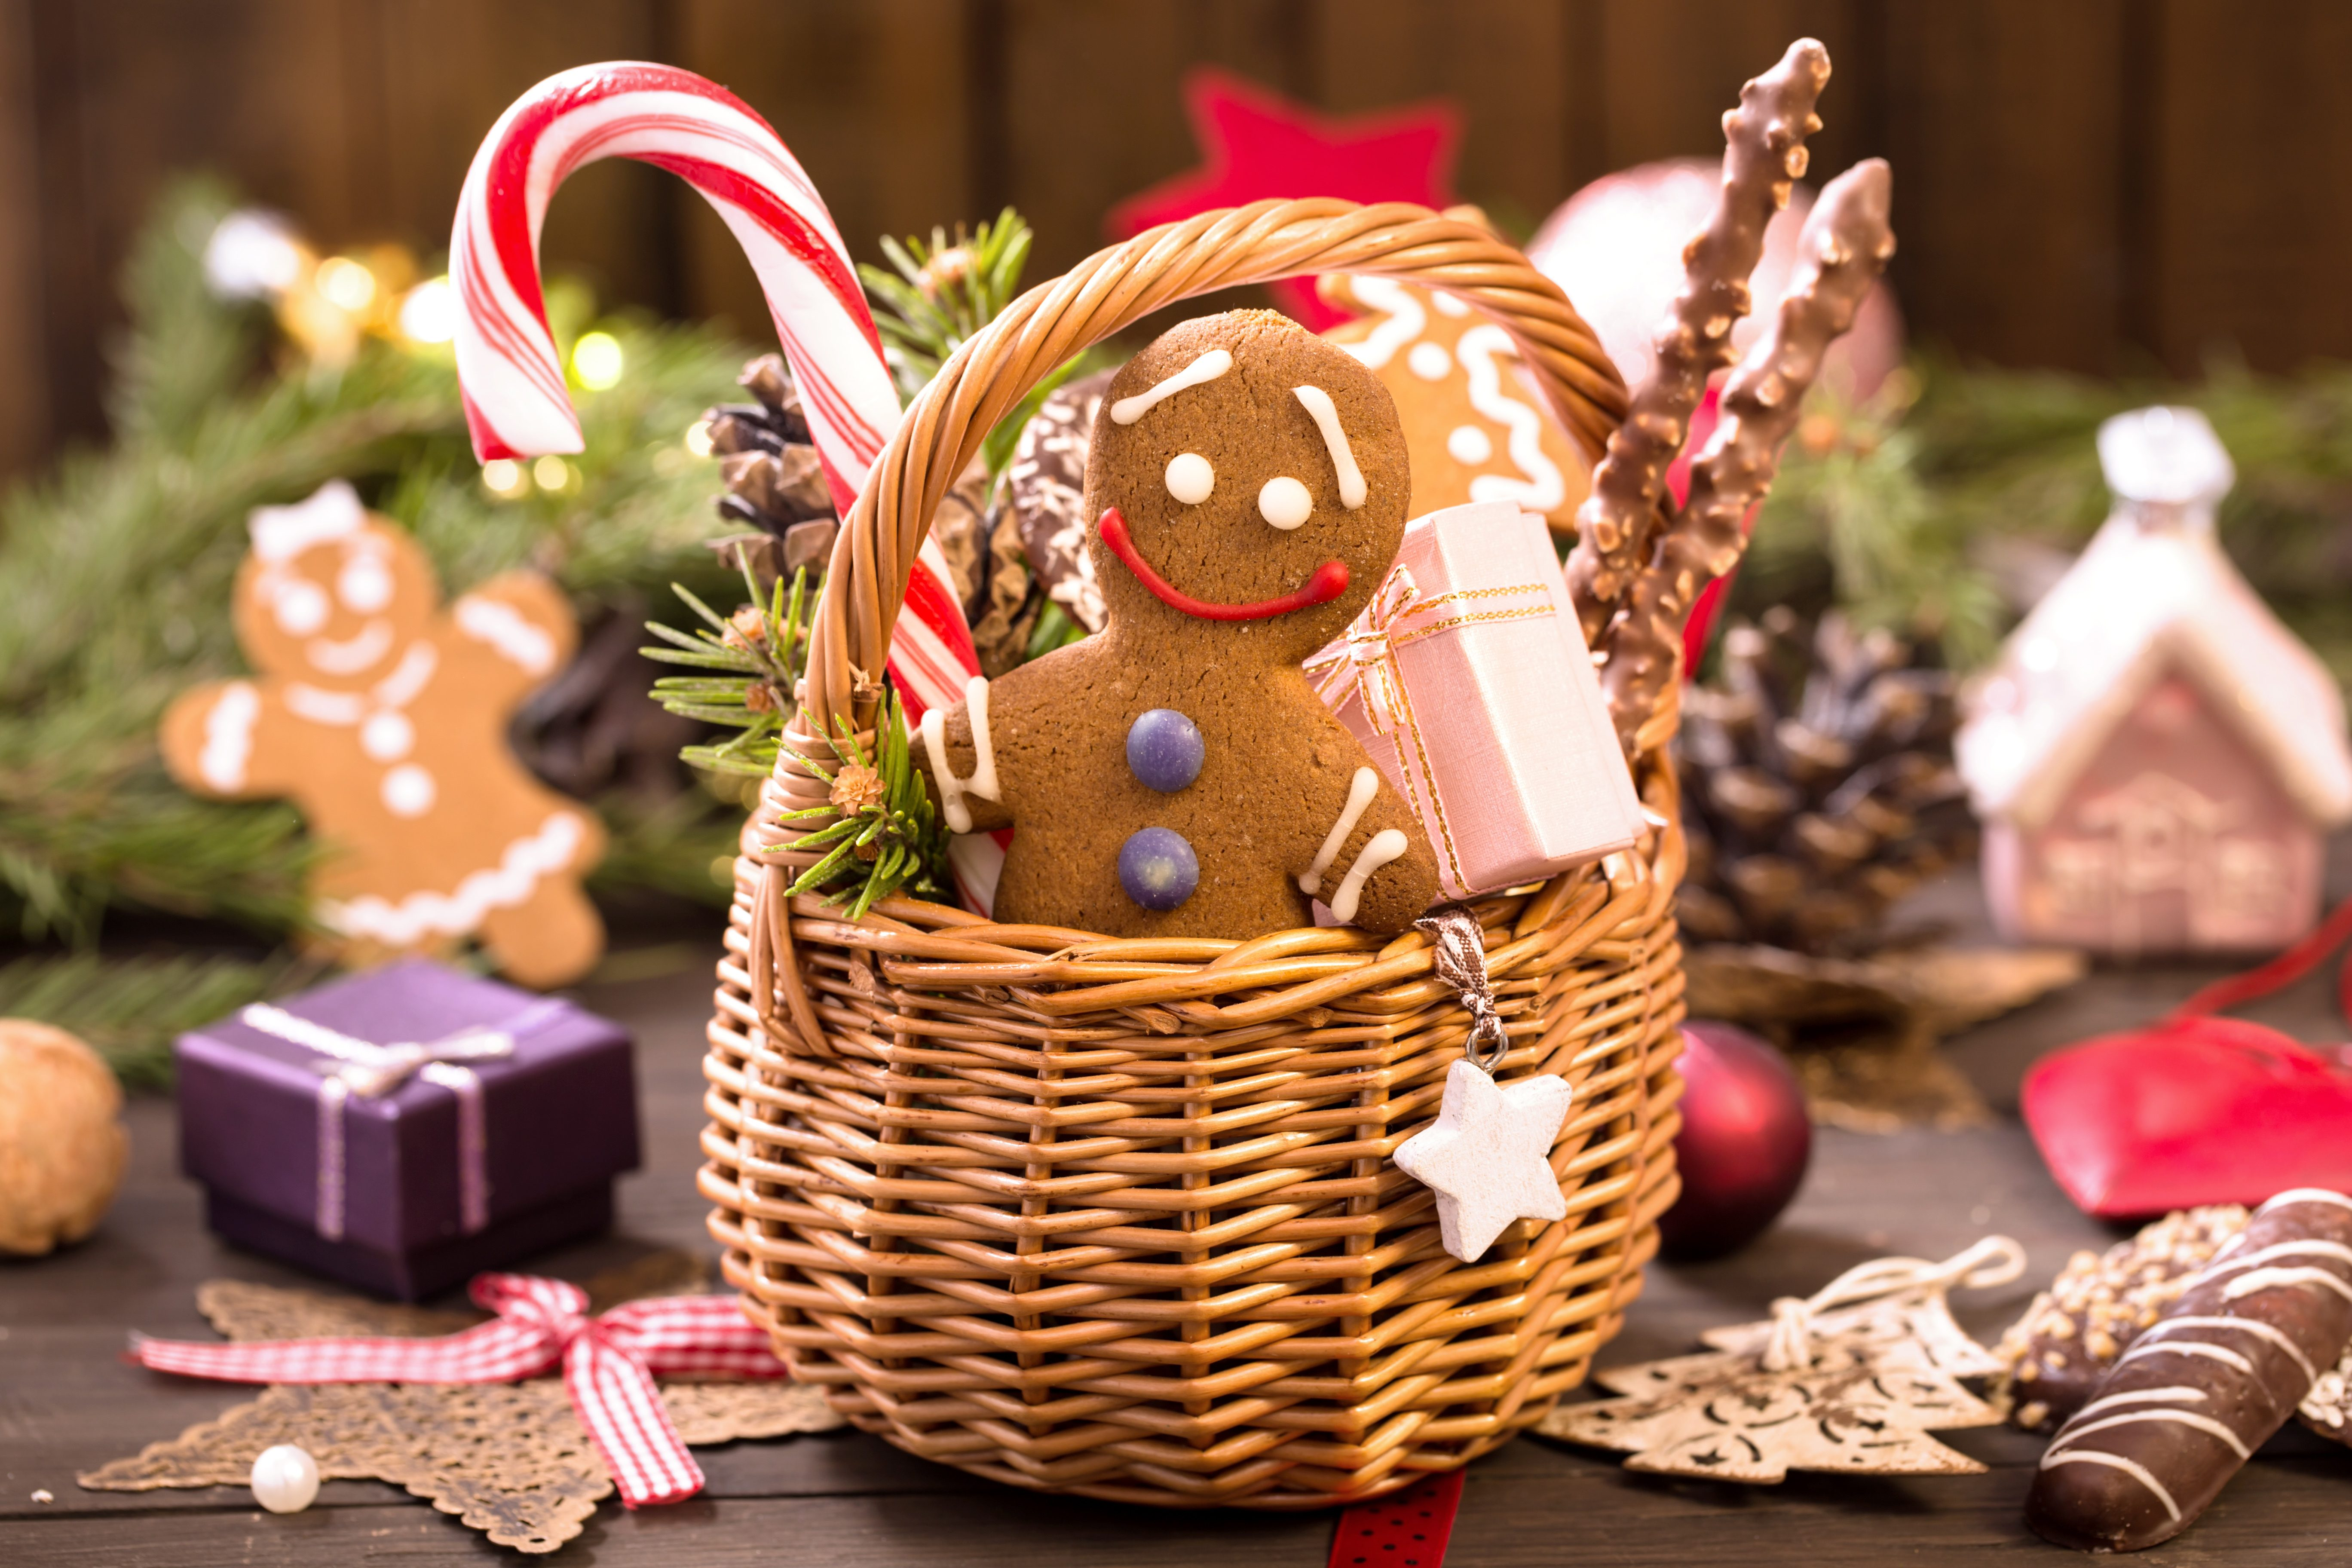 Basket of various Christmas treats, gingerbread man, gifts and decorations on the table